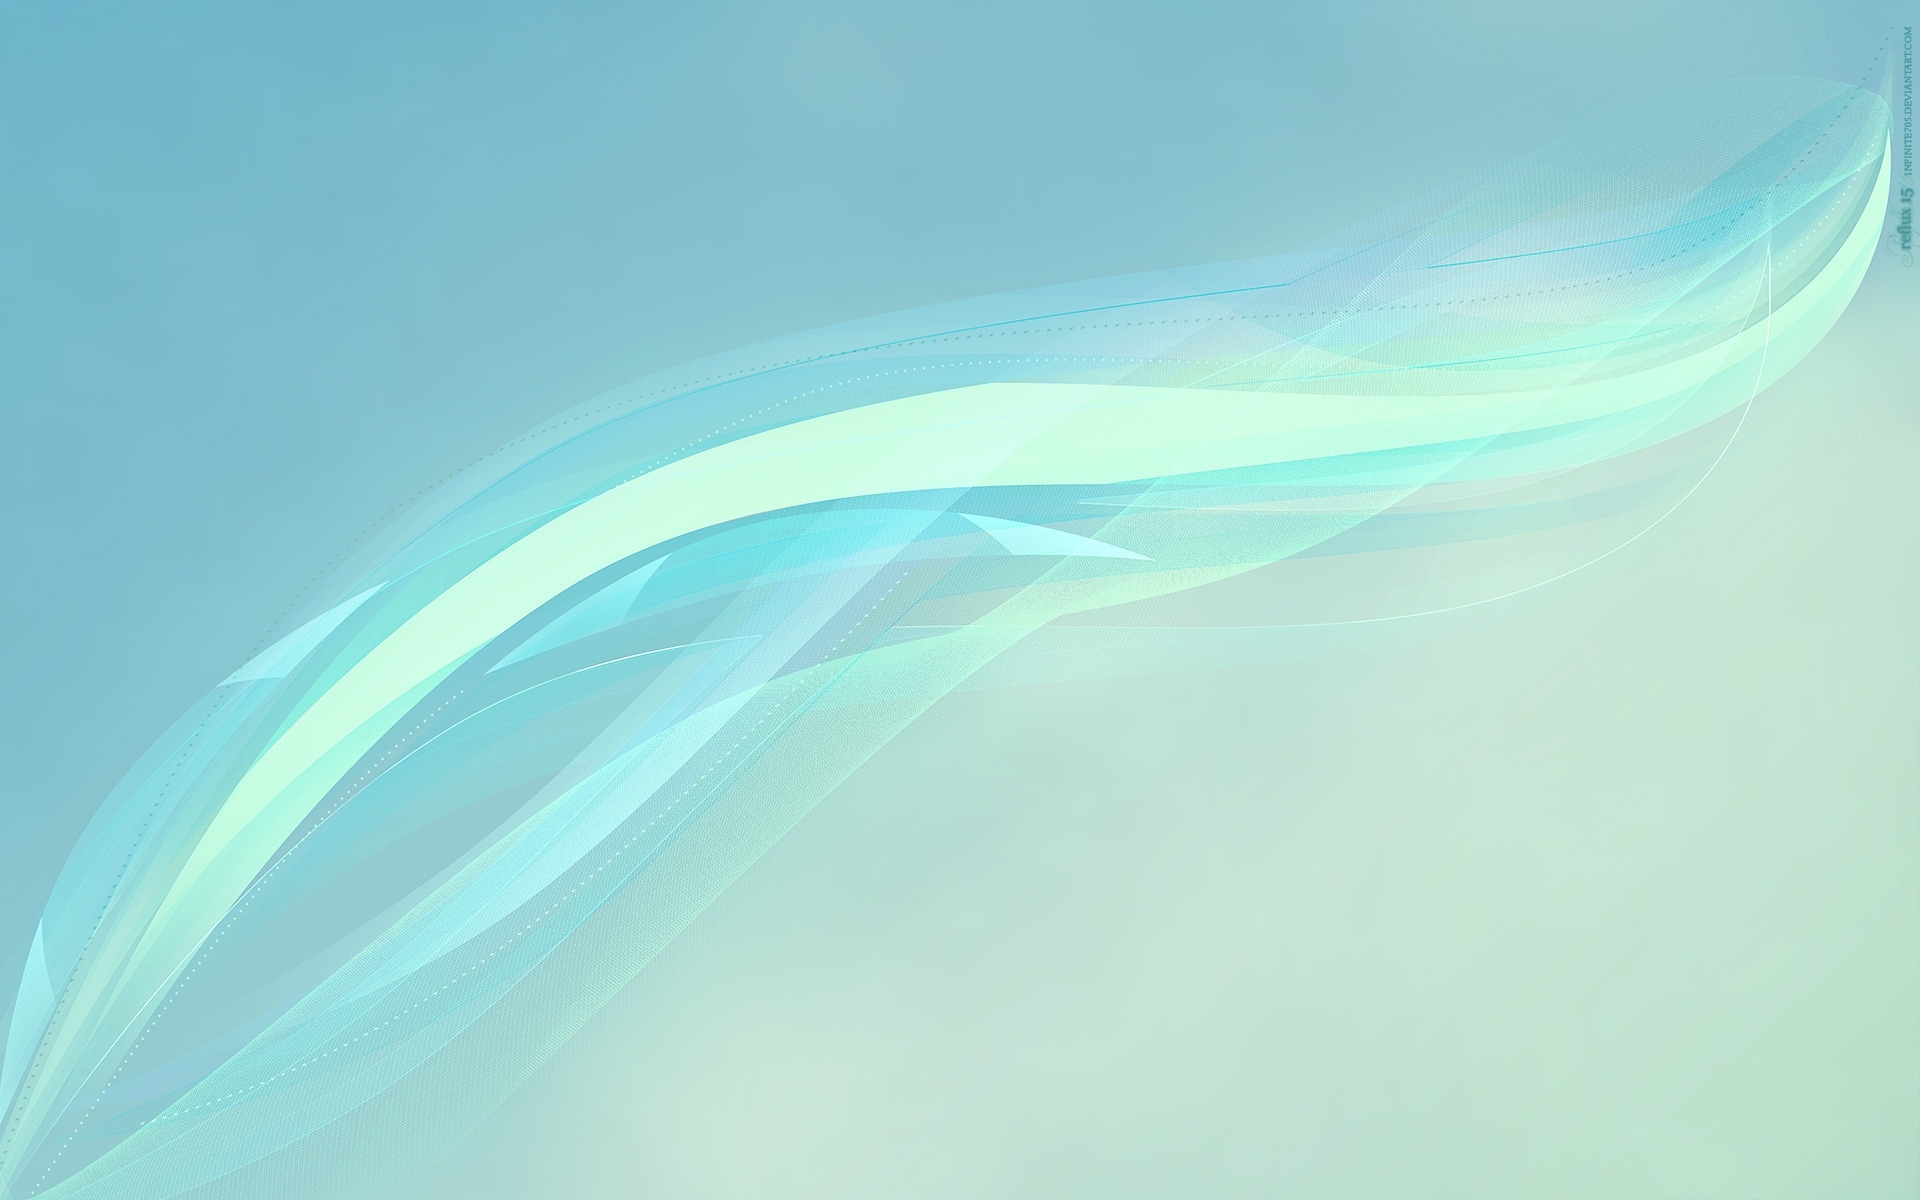 background_lines_wavy_white_light_46911